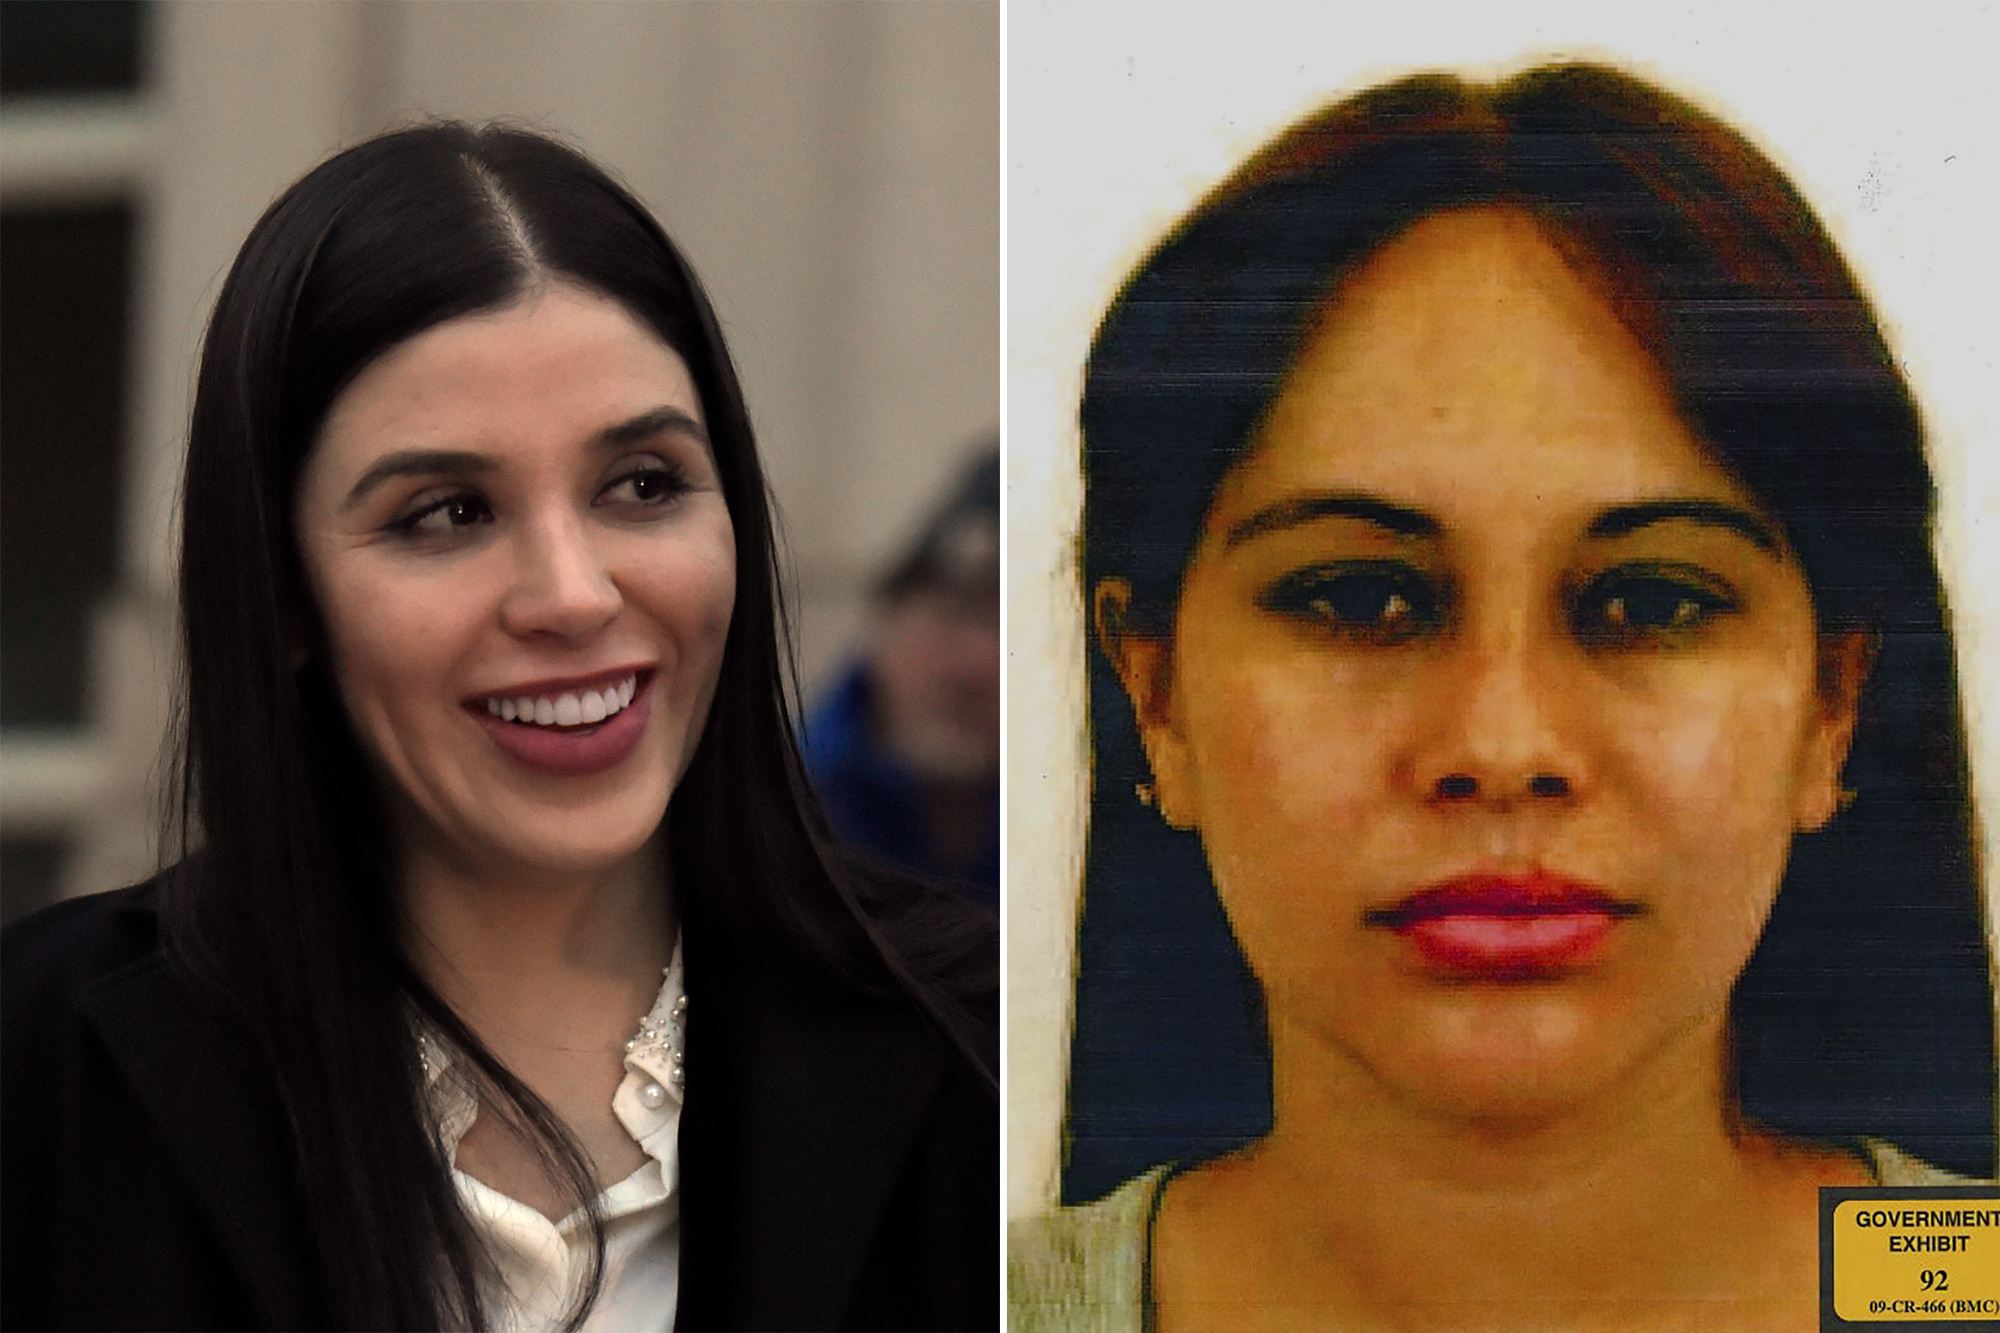 El Chapo's wife laughs as his mistress weeps on the stand